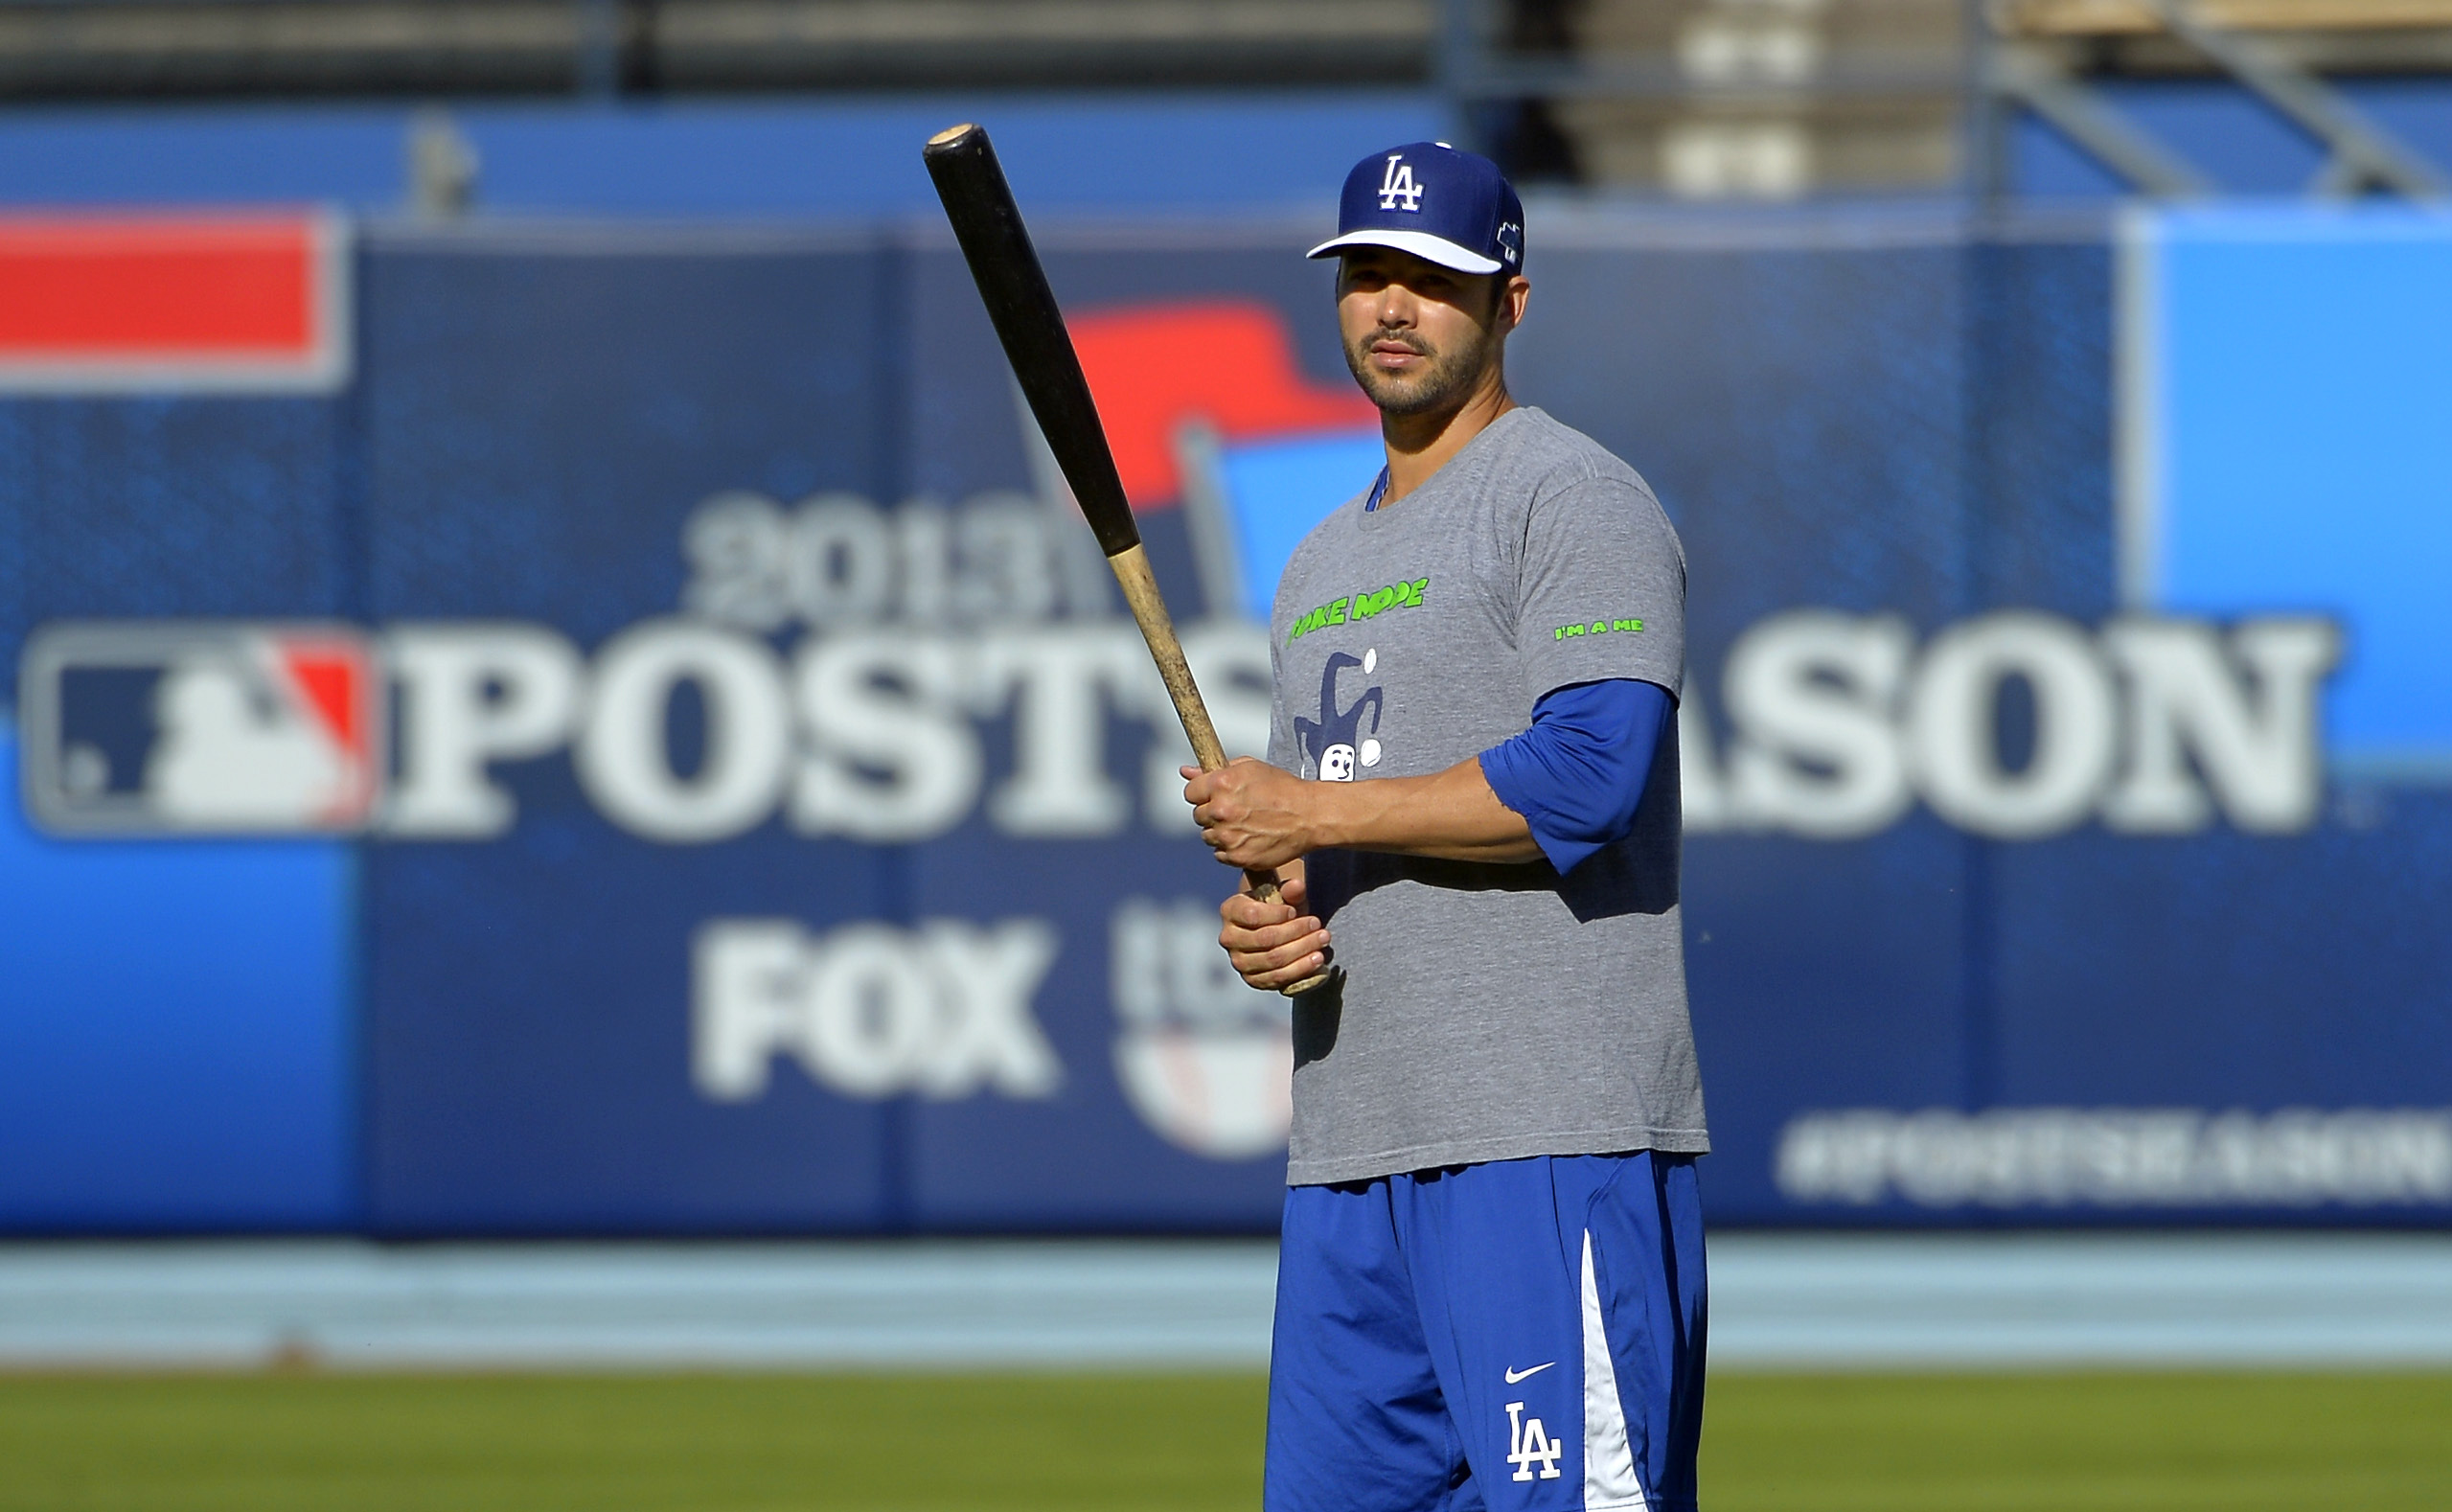 Los Angeles Dodgers' Andre Ethier warms up during practice in preparation for Game 3 of the National League baseball division series against the Atlanta Braves, Saturday, Oct. 5, 2013, in Los Angeles